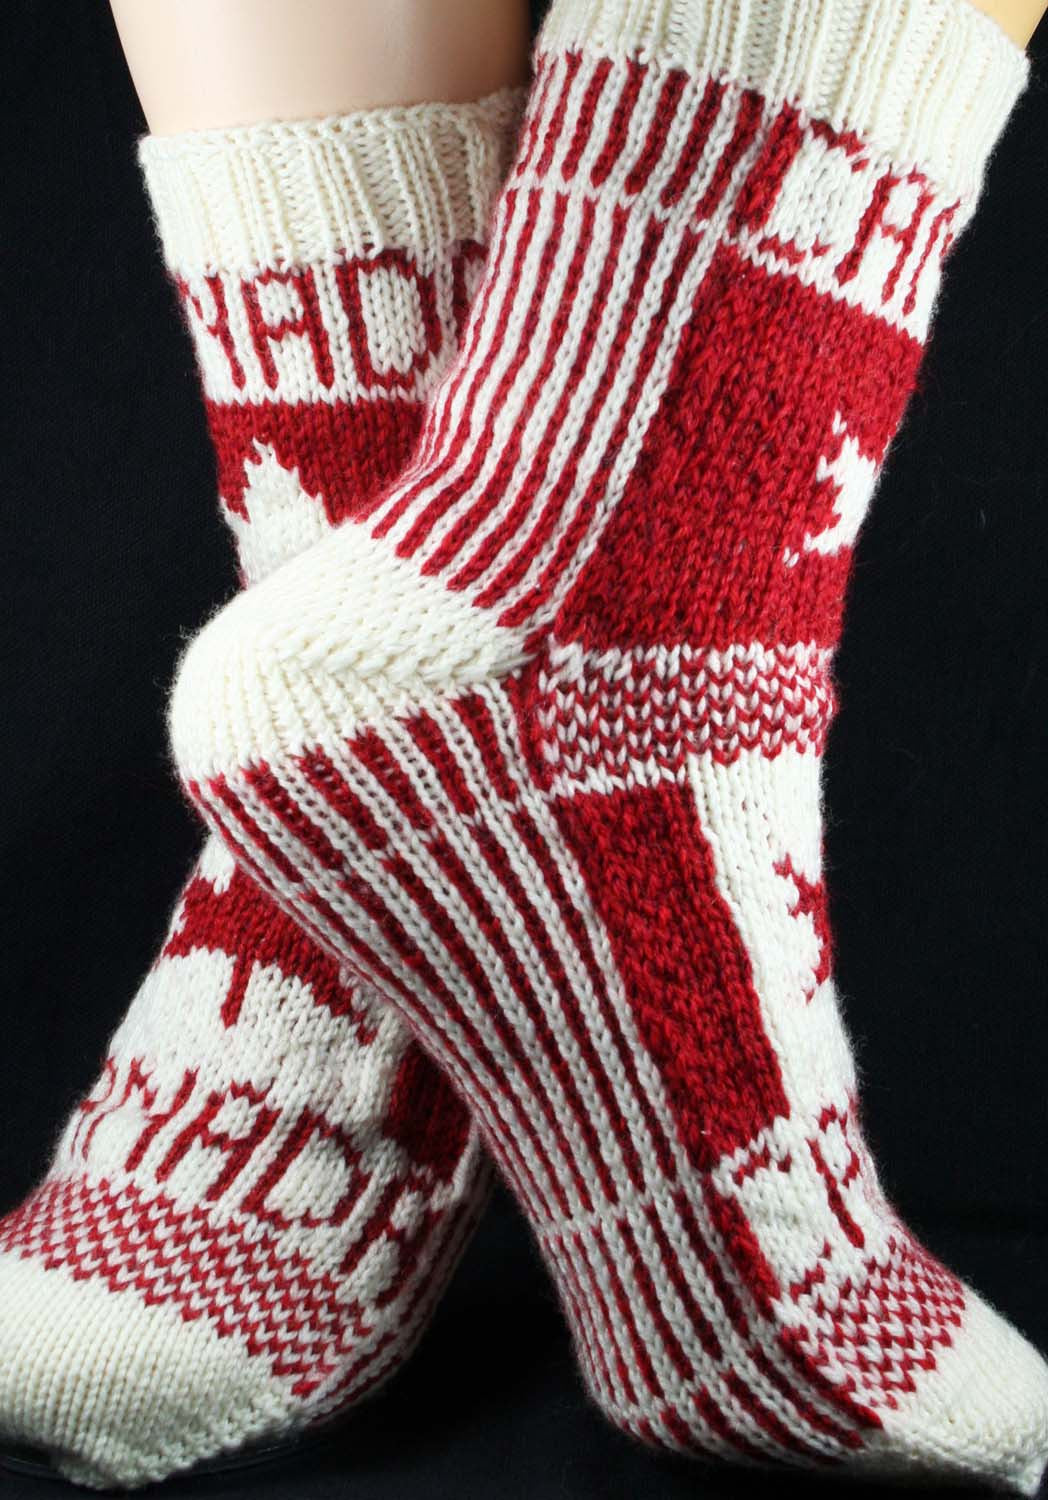 KNITTING PATTERN for Flag Socks: Canada -  Charted Sock pattern - digital download - Colorwork Stranded knitting